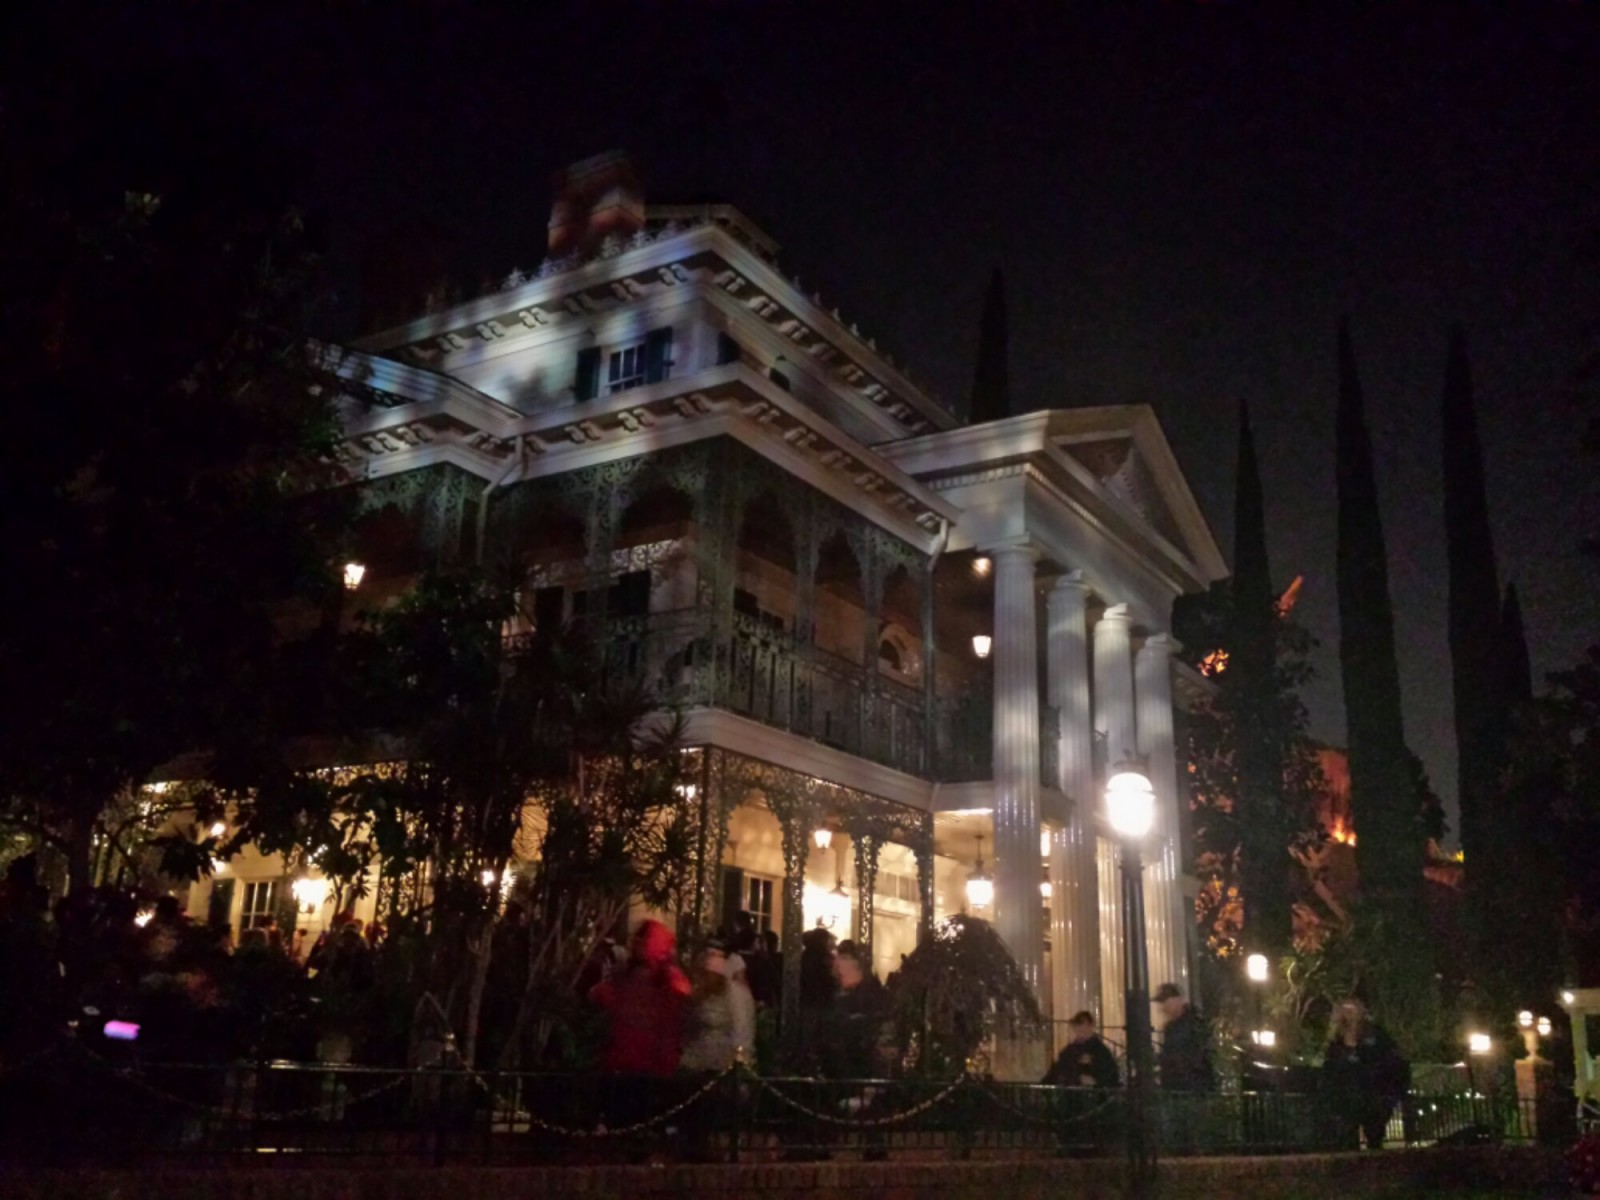 Haunted Mansion had a posted 20 min wait, looked shorter, turned out to be 5 min